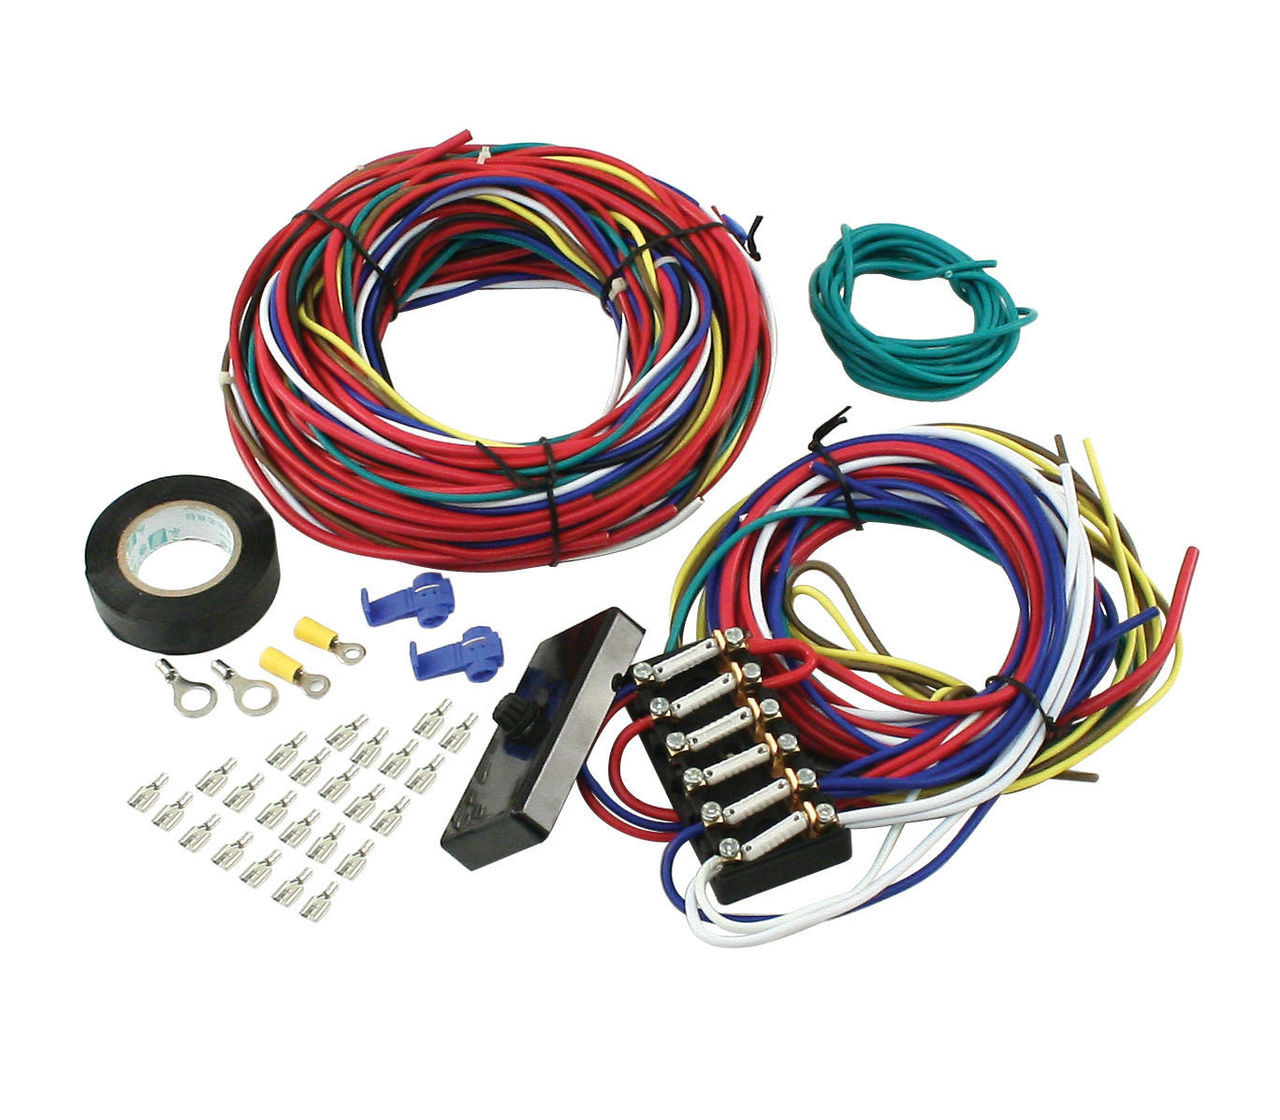 empi vw dune buggy sand rail baja universal wiring harness with fuse box 9466 [ 1280 x 1120 Pixel ]